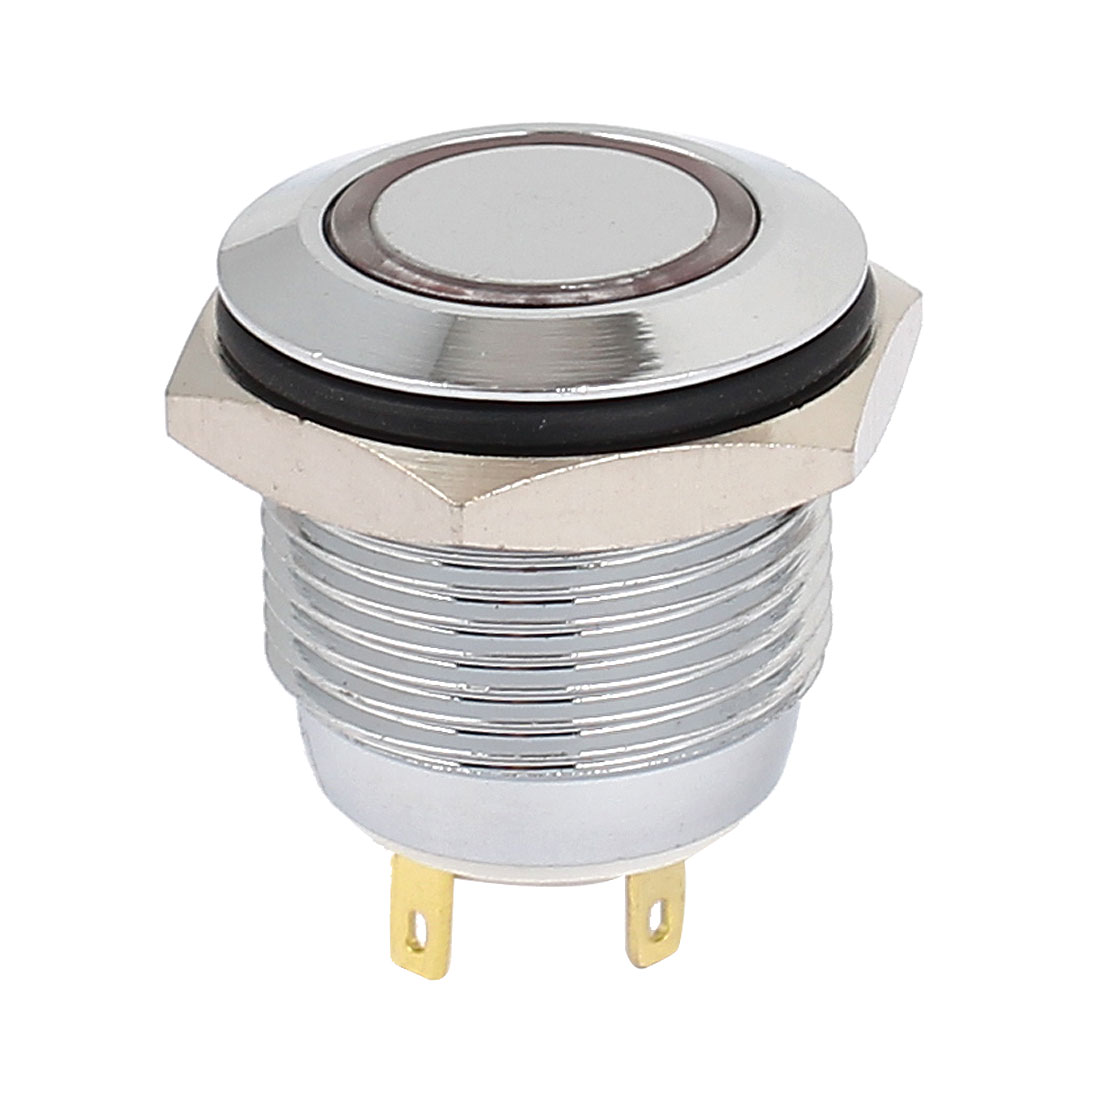 3V 16mm Dia Red LED Lamp Chromium Plated Brass Momentary Pushbutton Switch